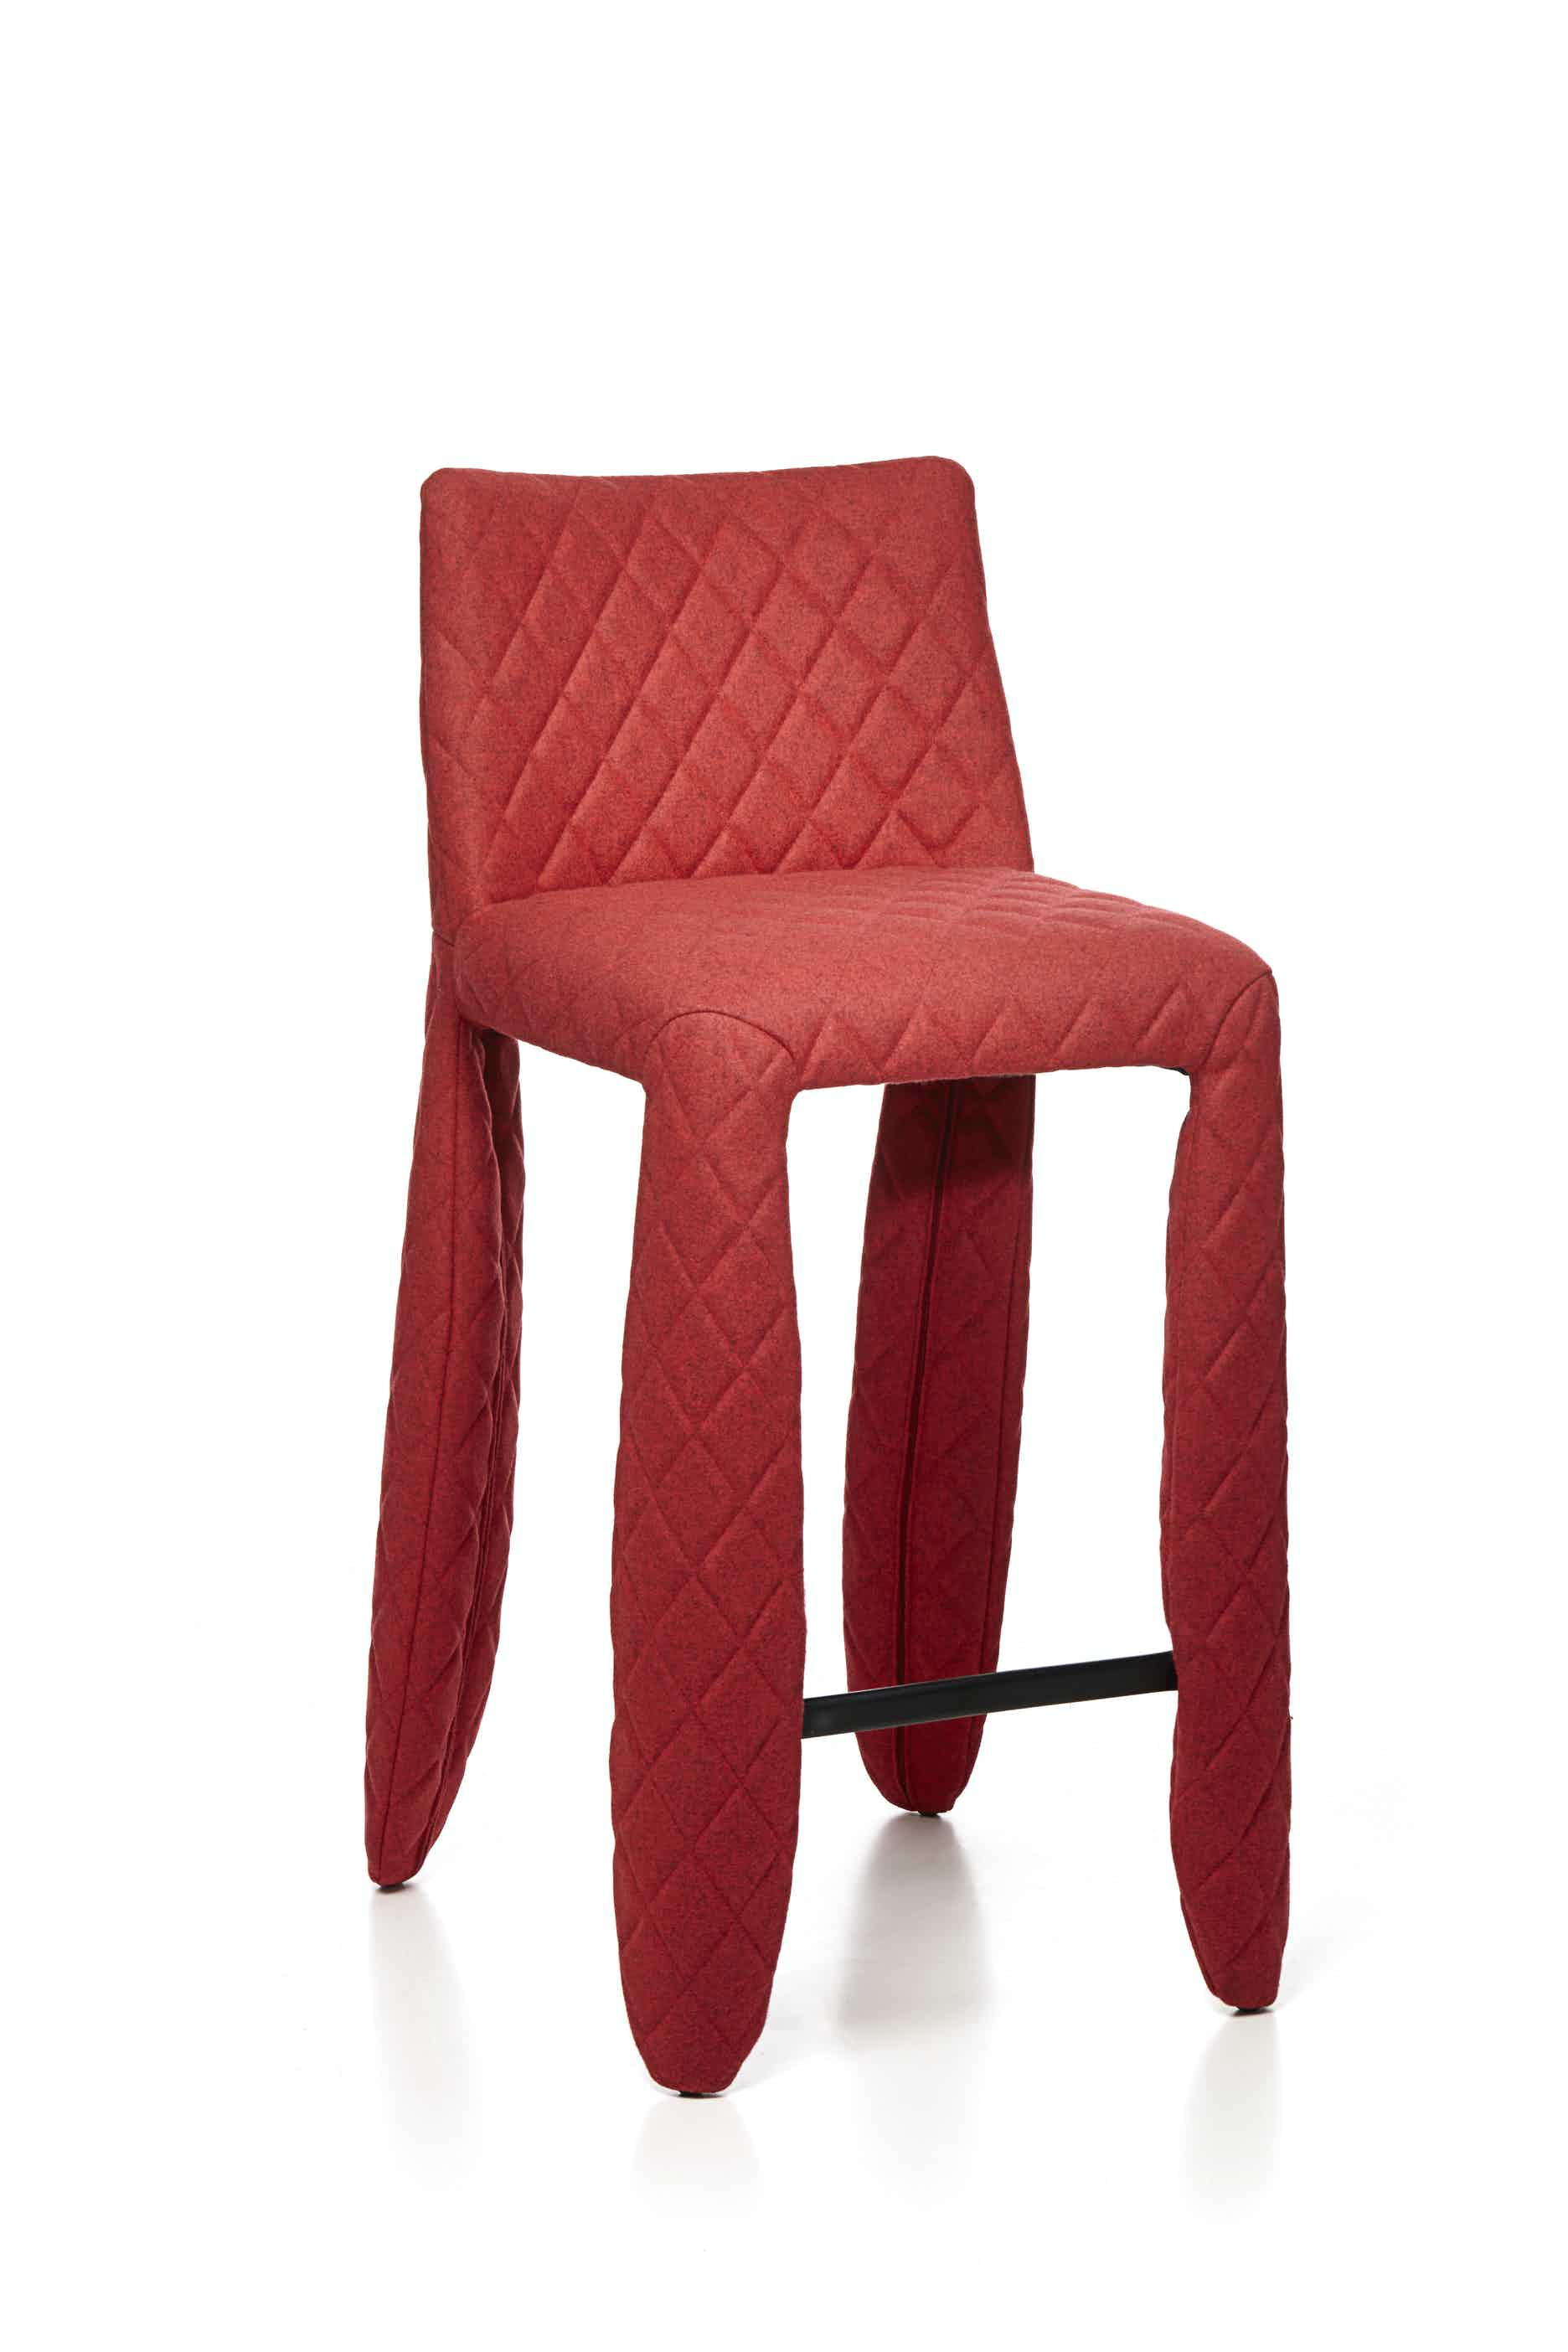 Moooi monster bar stool divina melange red haute living